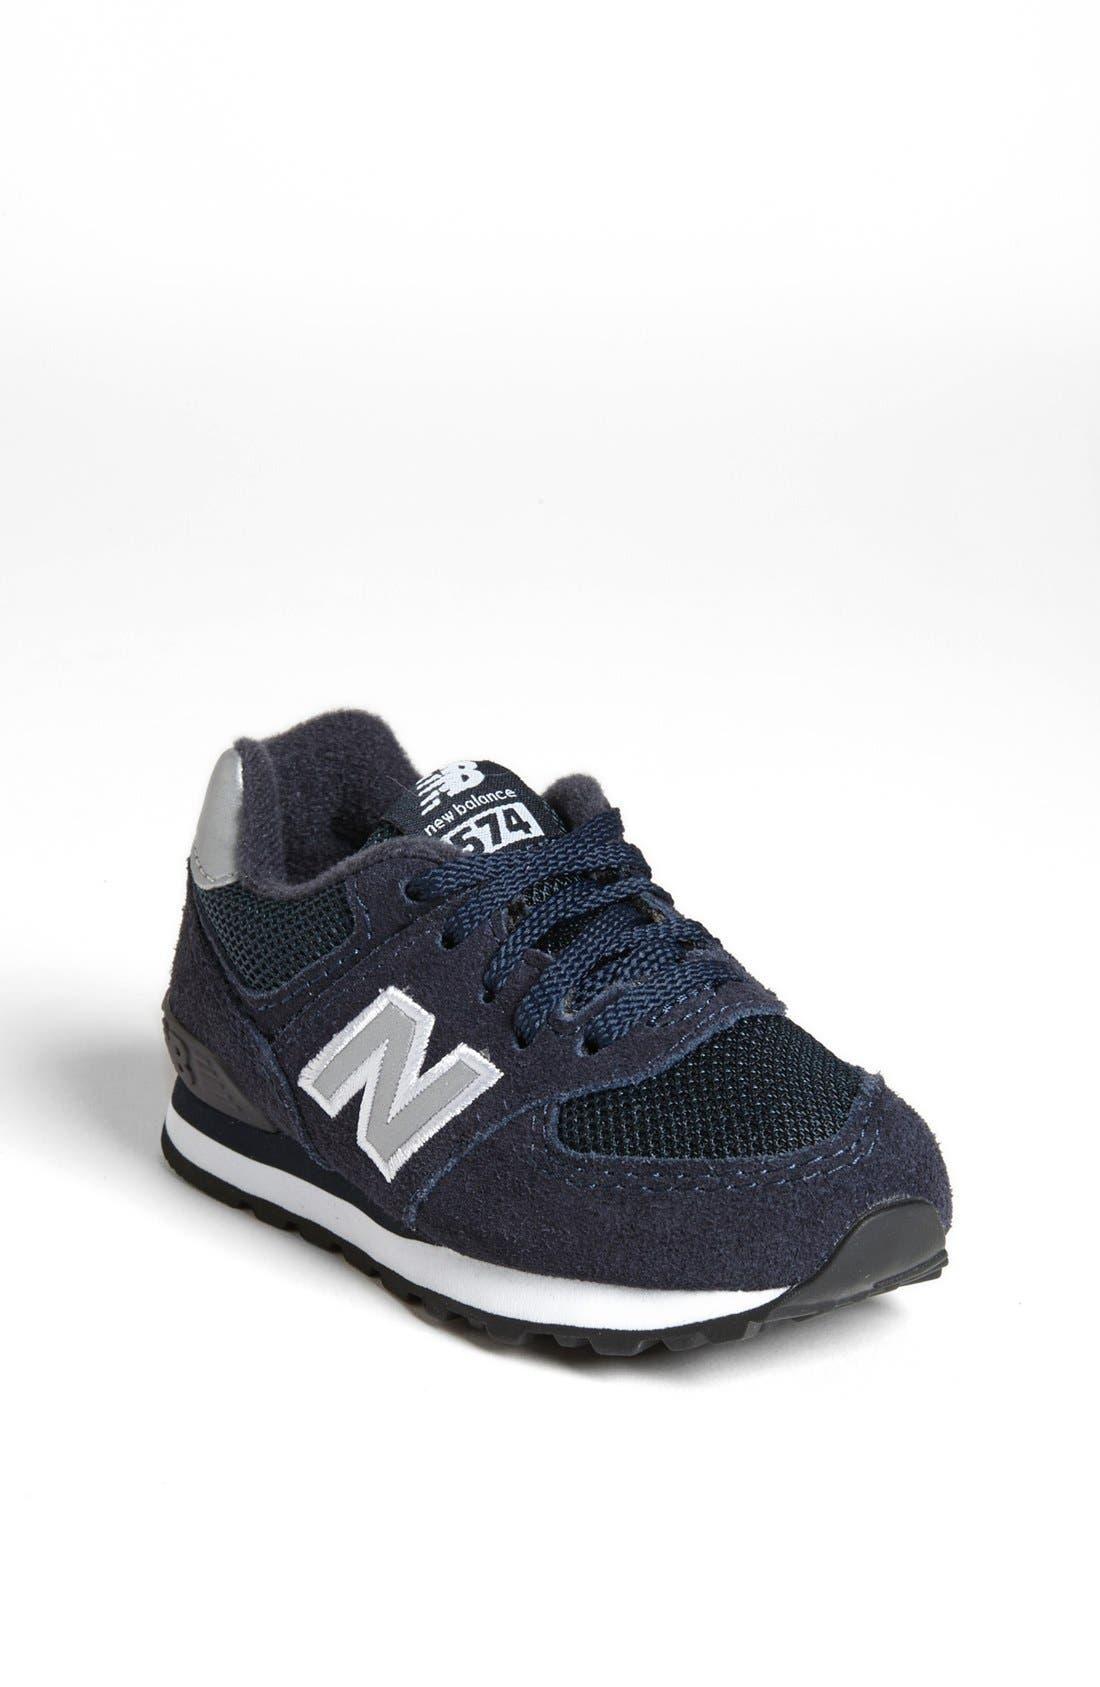 Main Image - New Balance '574' Sneaker (Baby, Walker & Toddler)